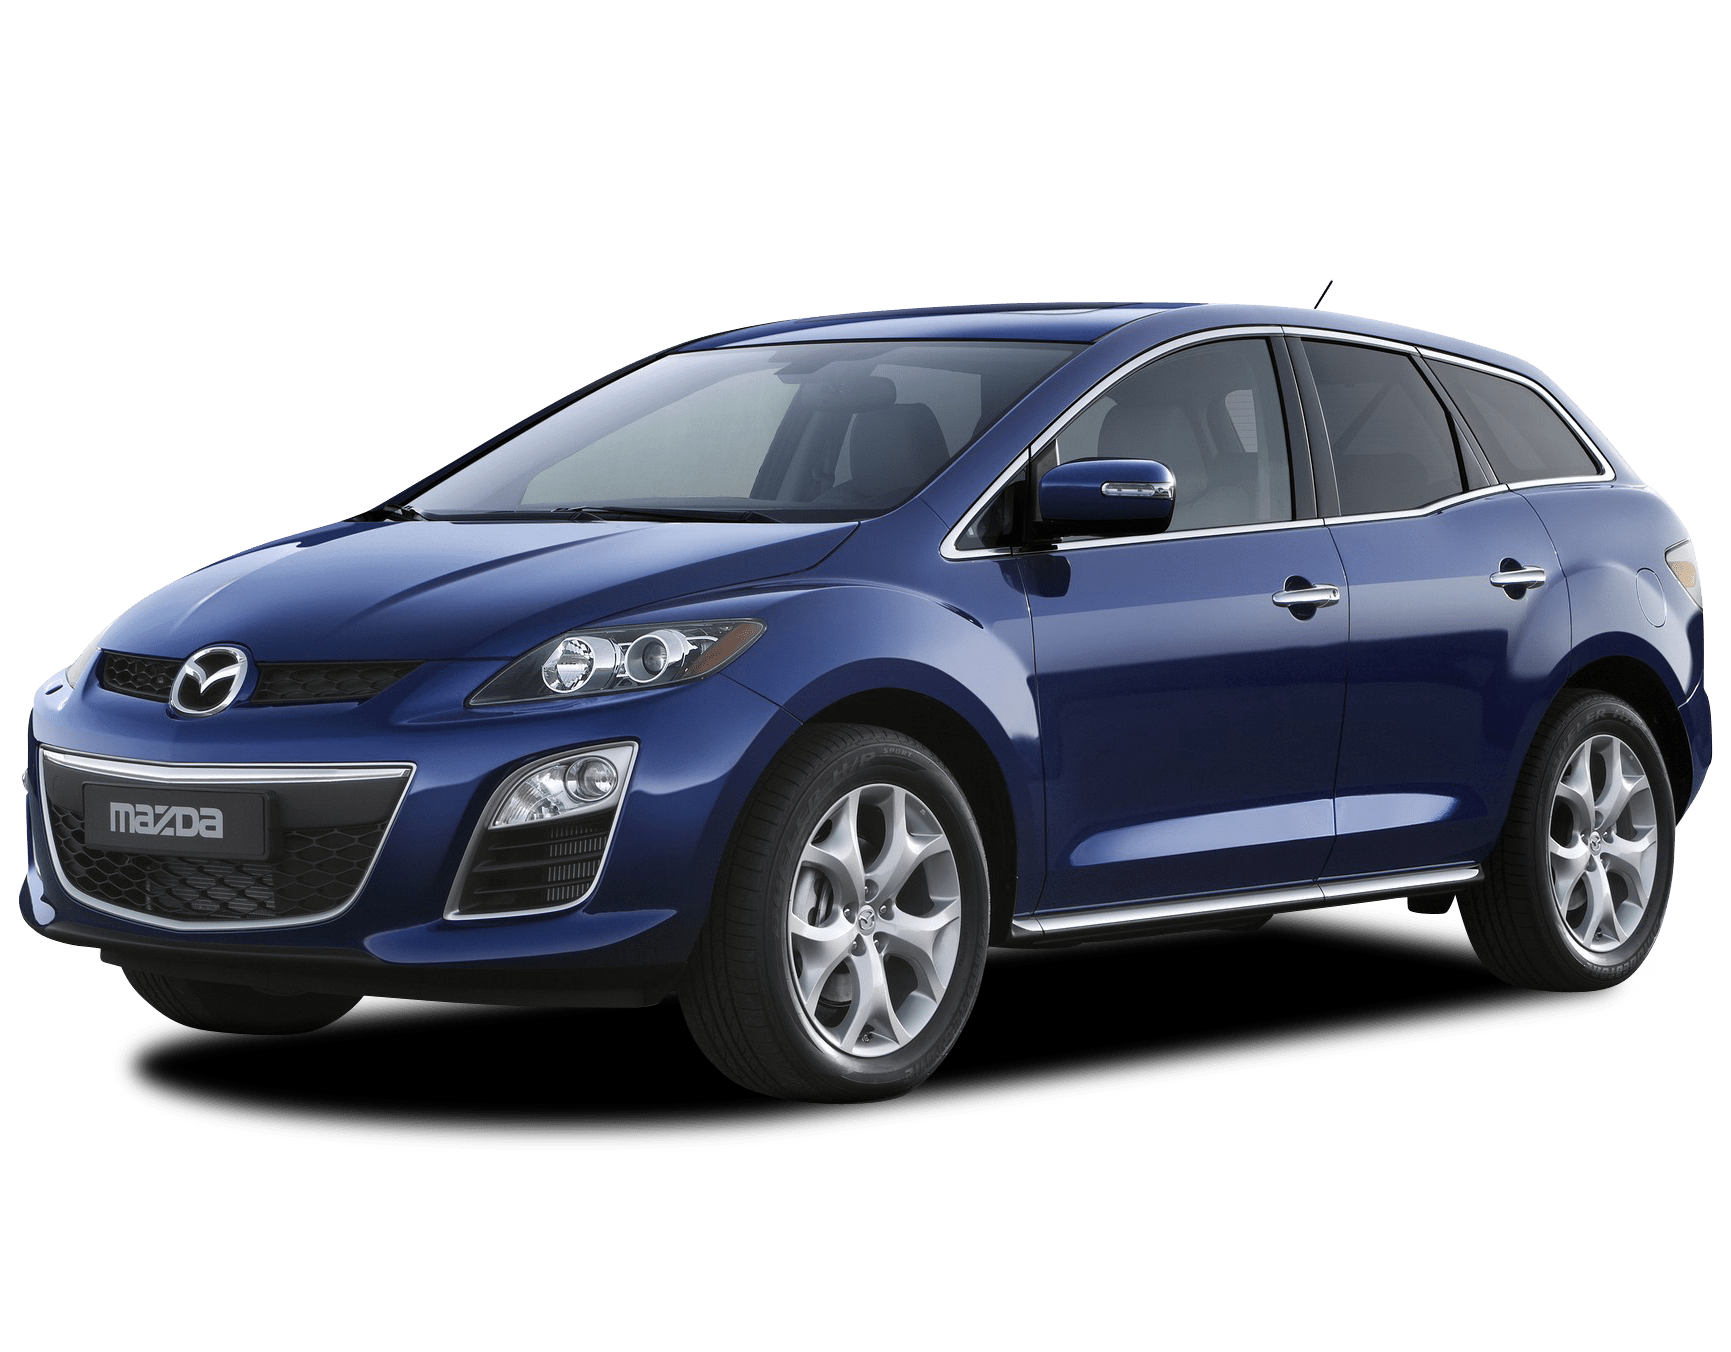 Mazda cx 7 classic sports review betting best site to bet on football